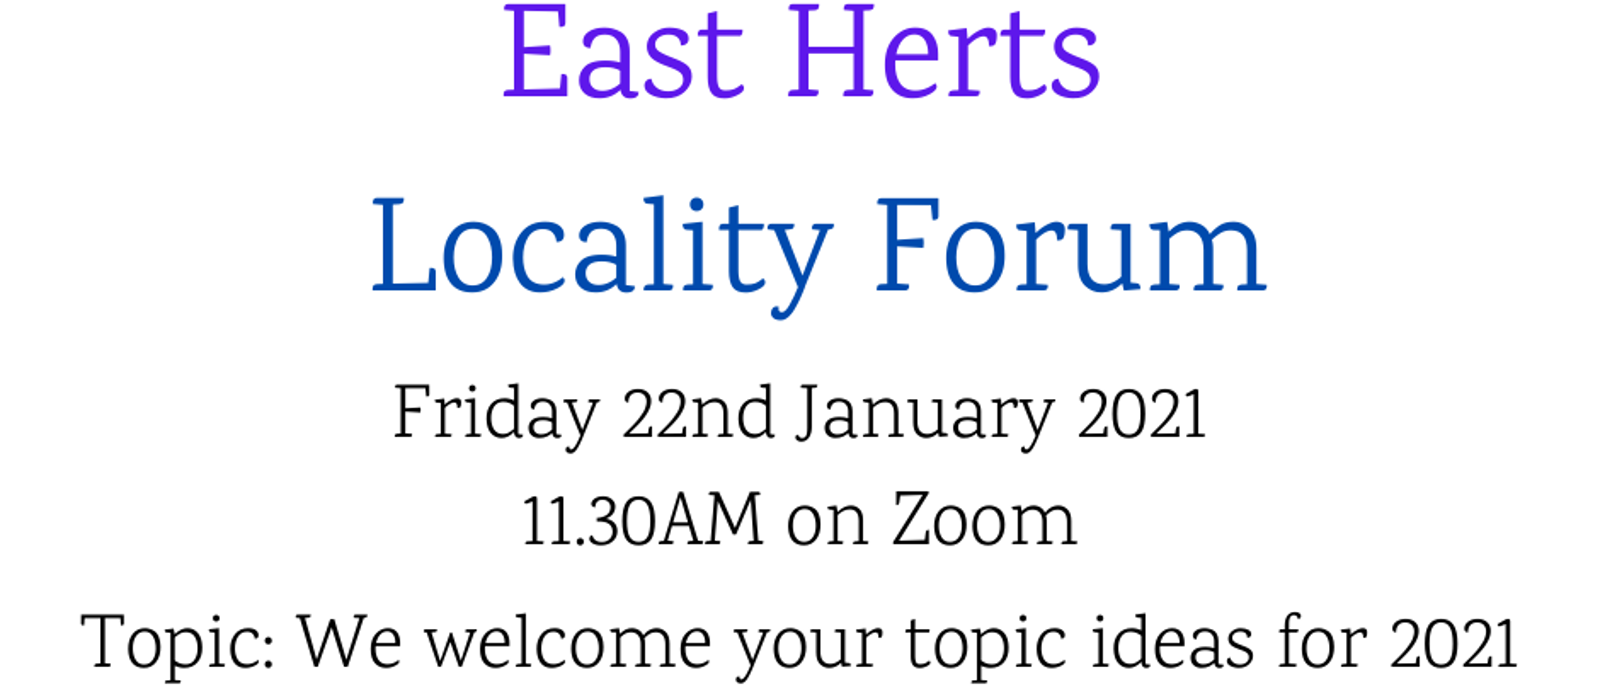 East Hertfordshire Locality Forum - 22.01.2021